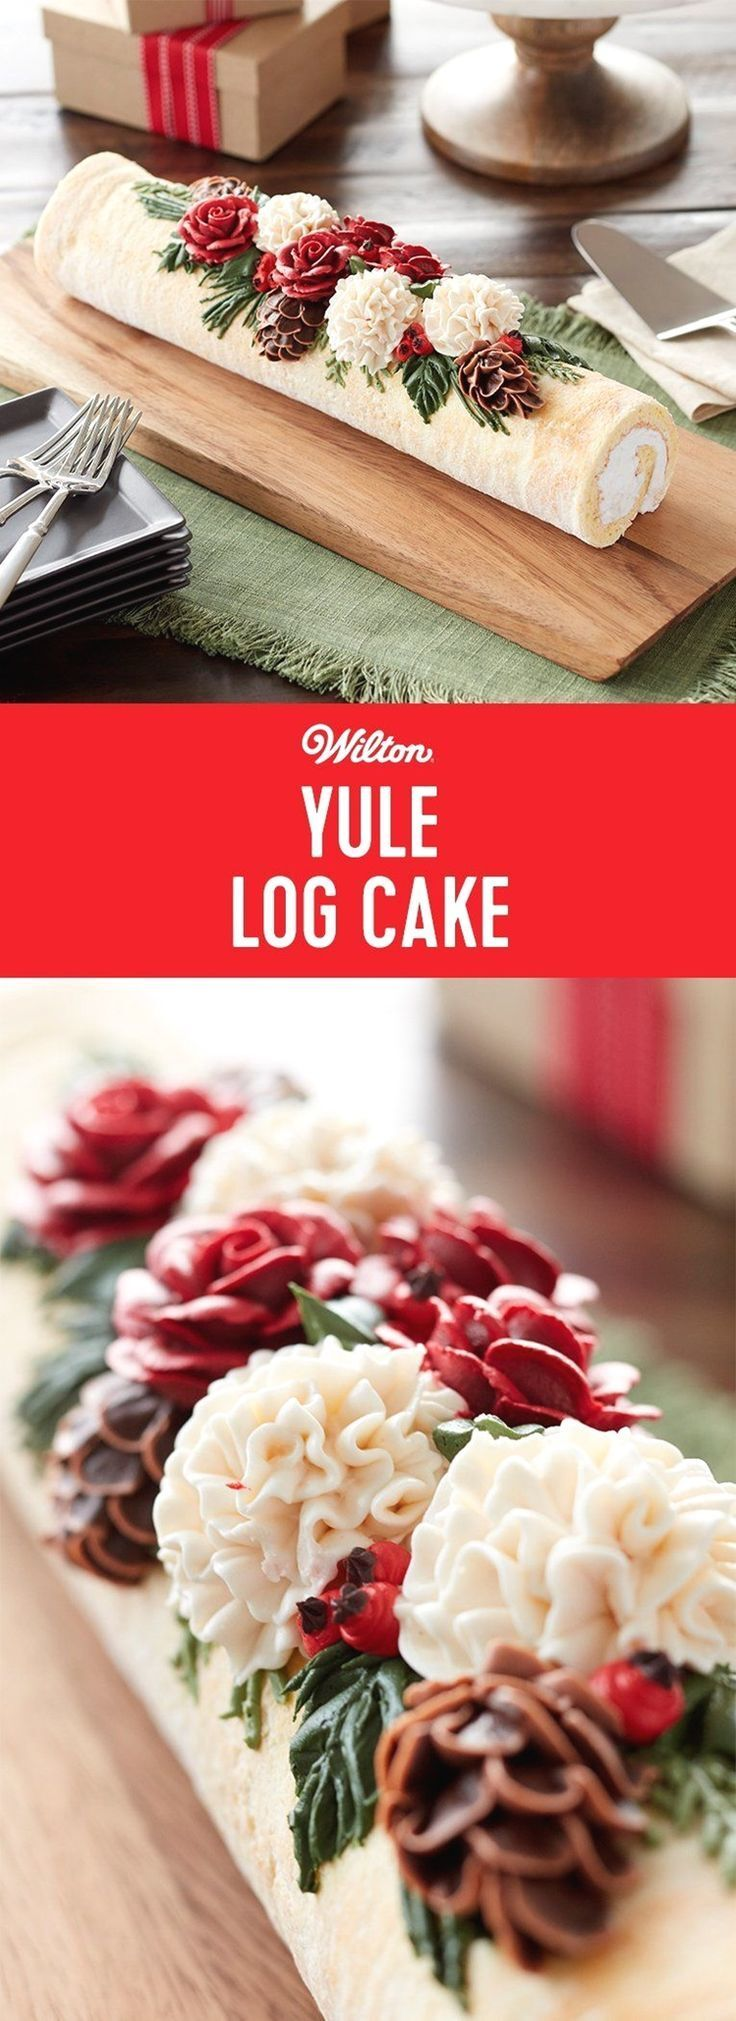 easy buttercream frosting recipe #cakedecoratingfrosting | sweet in 2018 | Pinterest | Cake, Desserts and Yule Log Cake